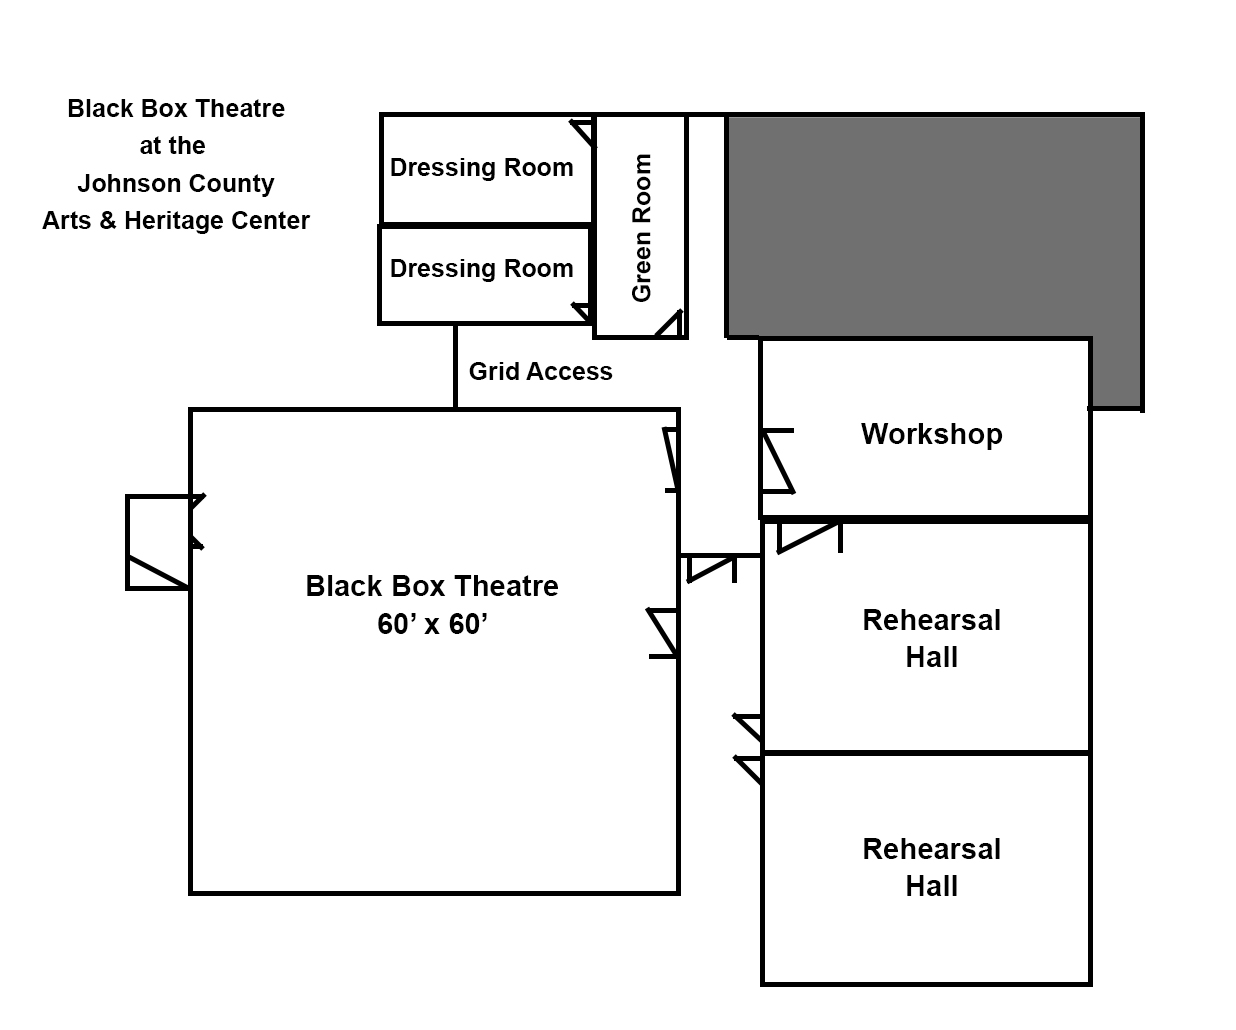 theatre stage specs theatre in the park rh theatreinthepark org Blank Stage Directions Diagram Blank Stage Directions Diagram